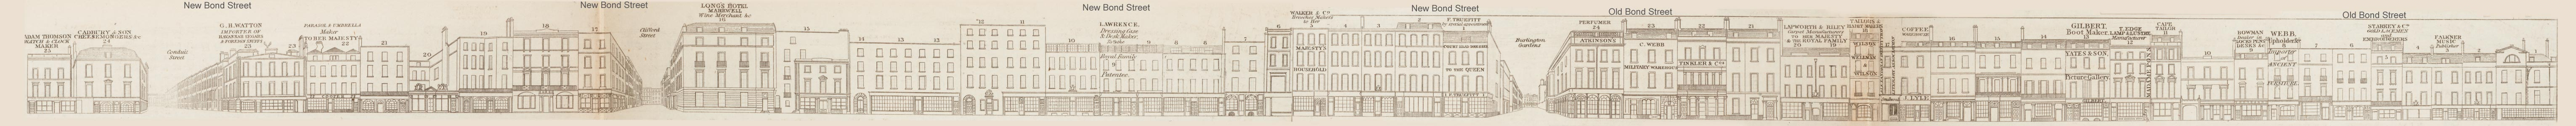 map - Tallis's London street views : No. 7. Bond Street, division 1 (east)